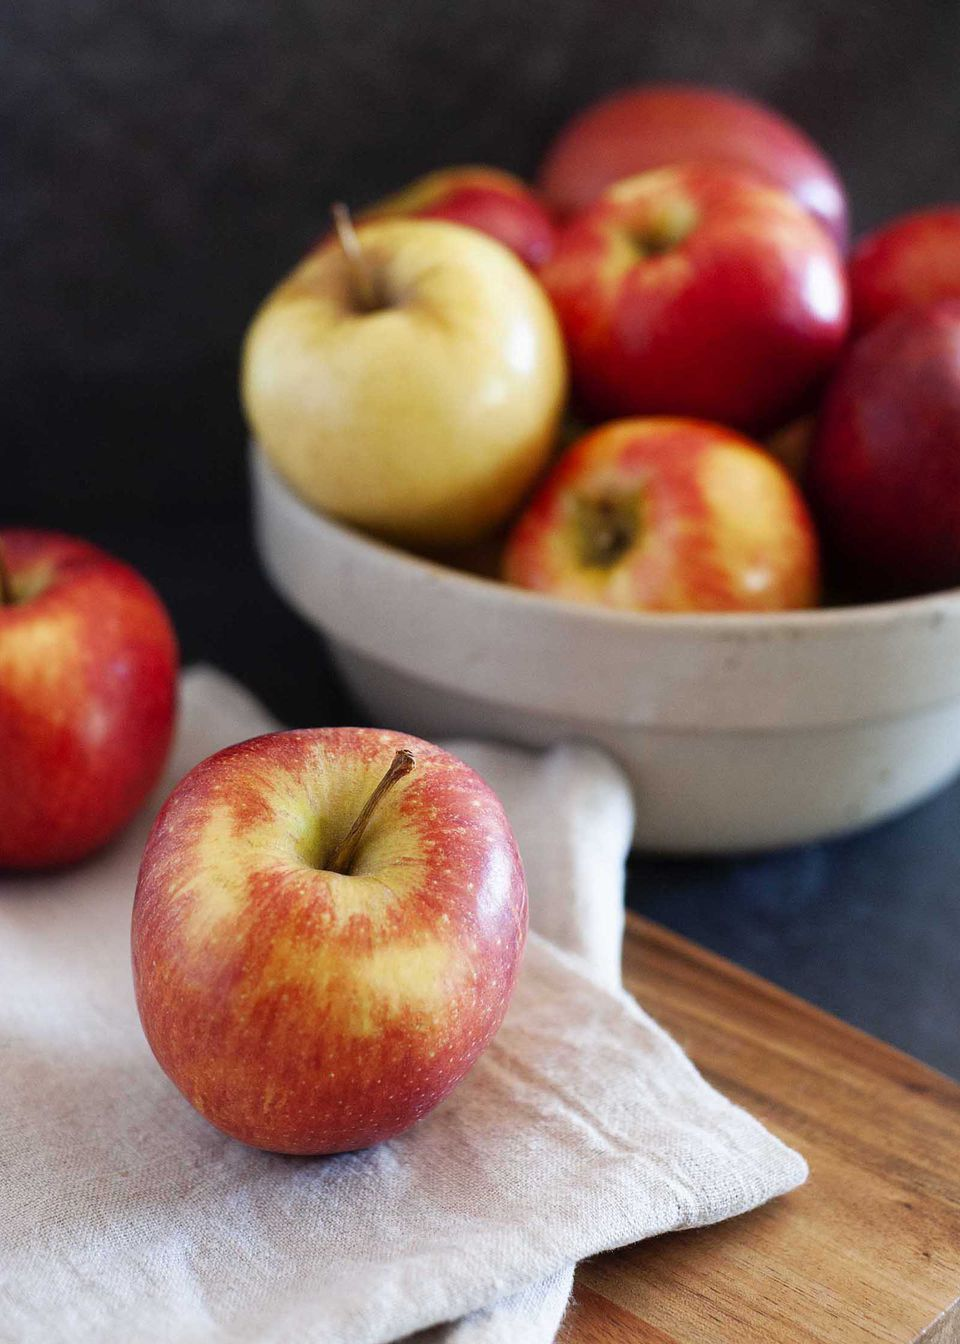 Guide to fall apples with apples on a counter and in a ceramic bowl.